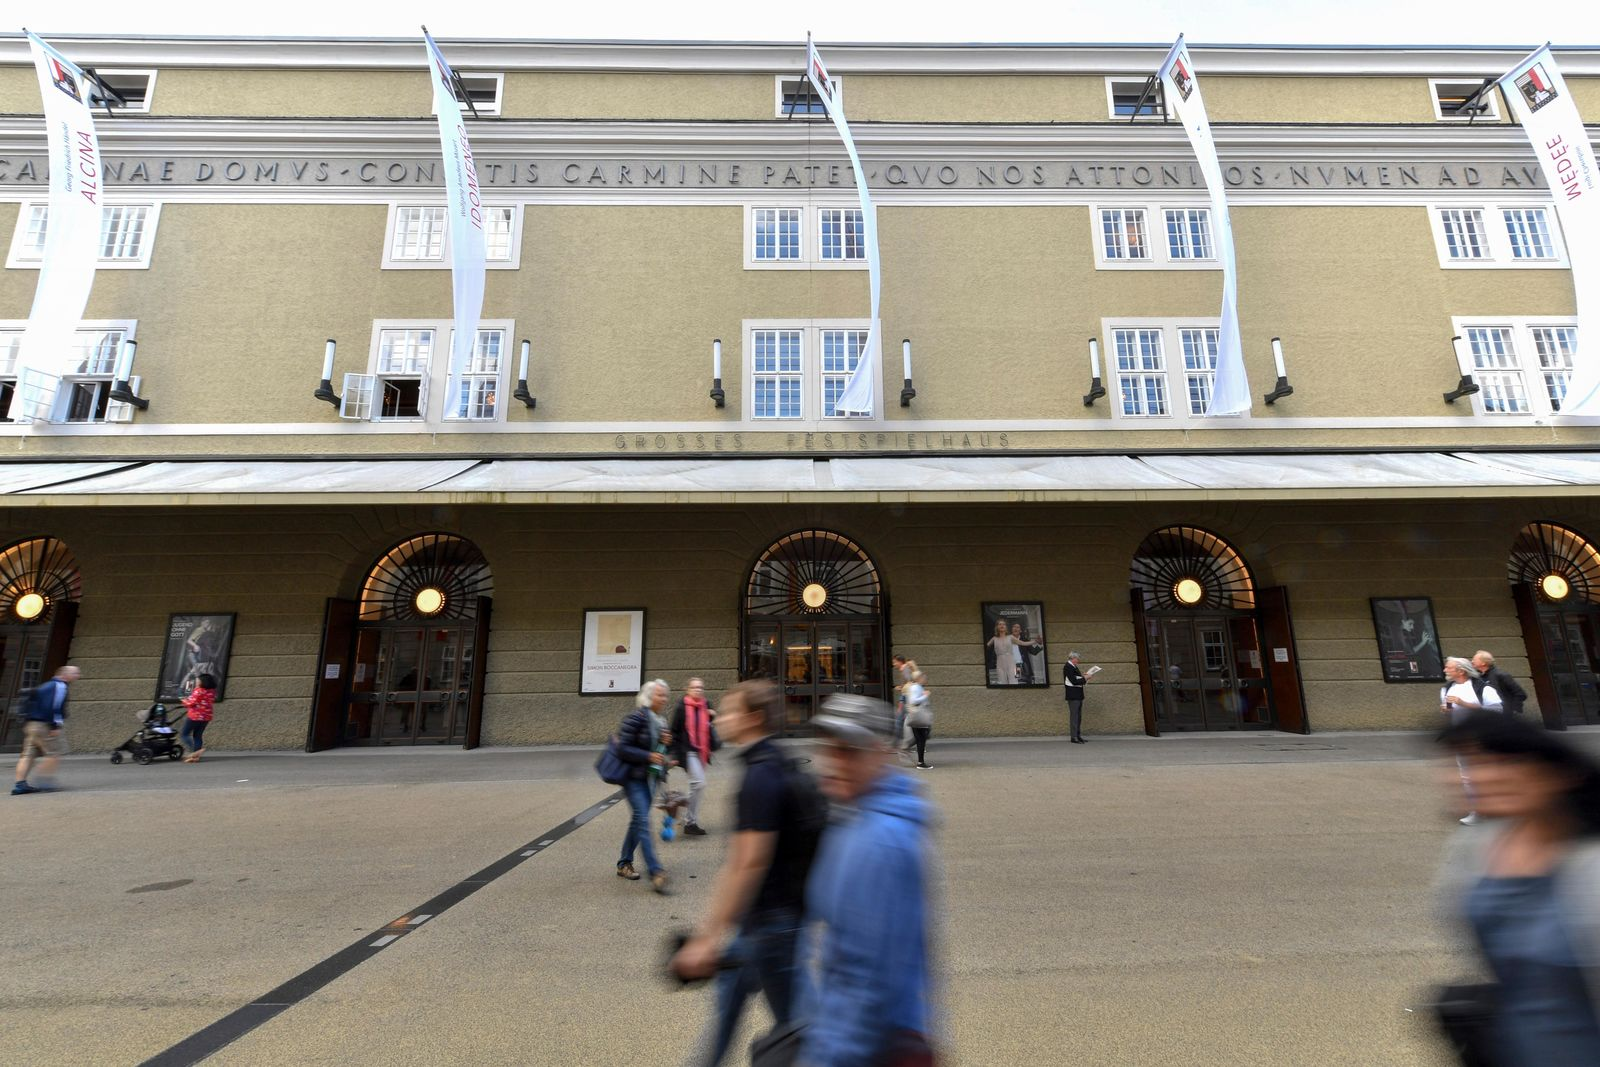 Out side view of the opera house in Salzburg, Austria, Wednesday, Aug. 14, 2019 where singer Placido Domingo will perfom 'Luisa Miller' by Giuseppe Verdi.{ } (AP Photo/Kerstin Joensson)